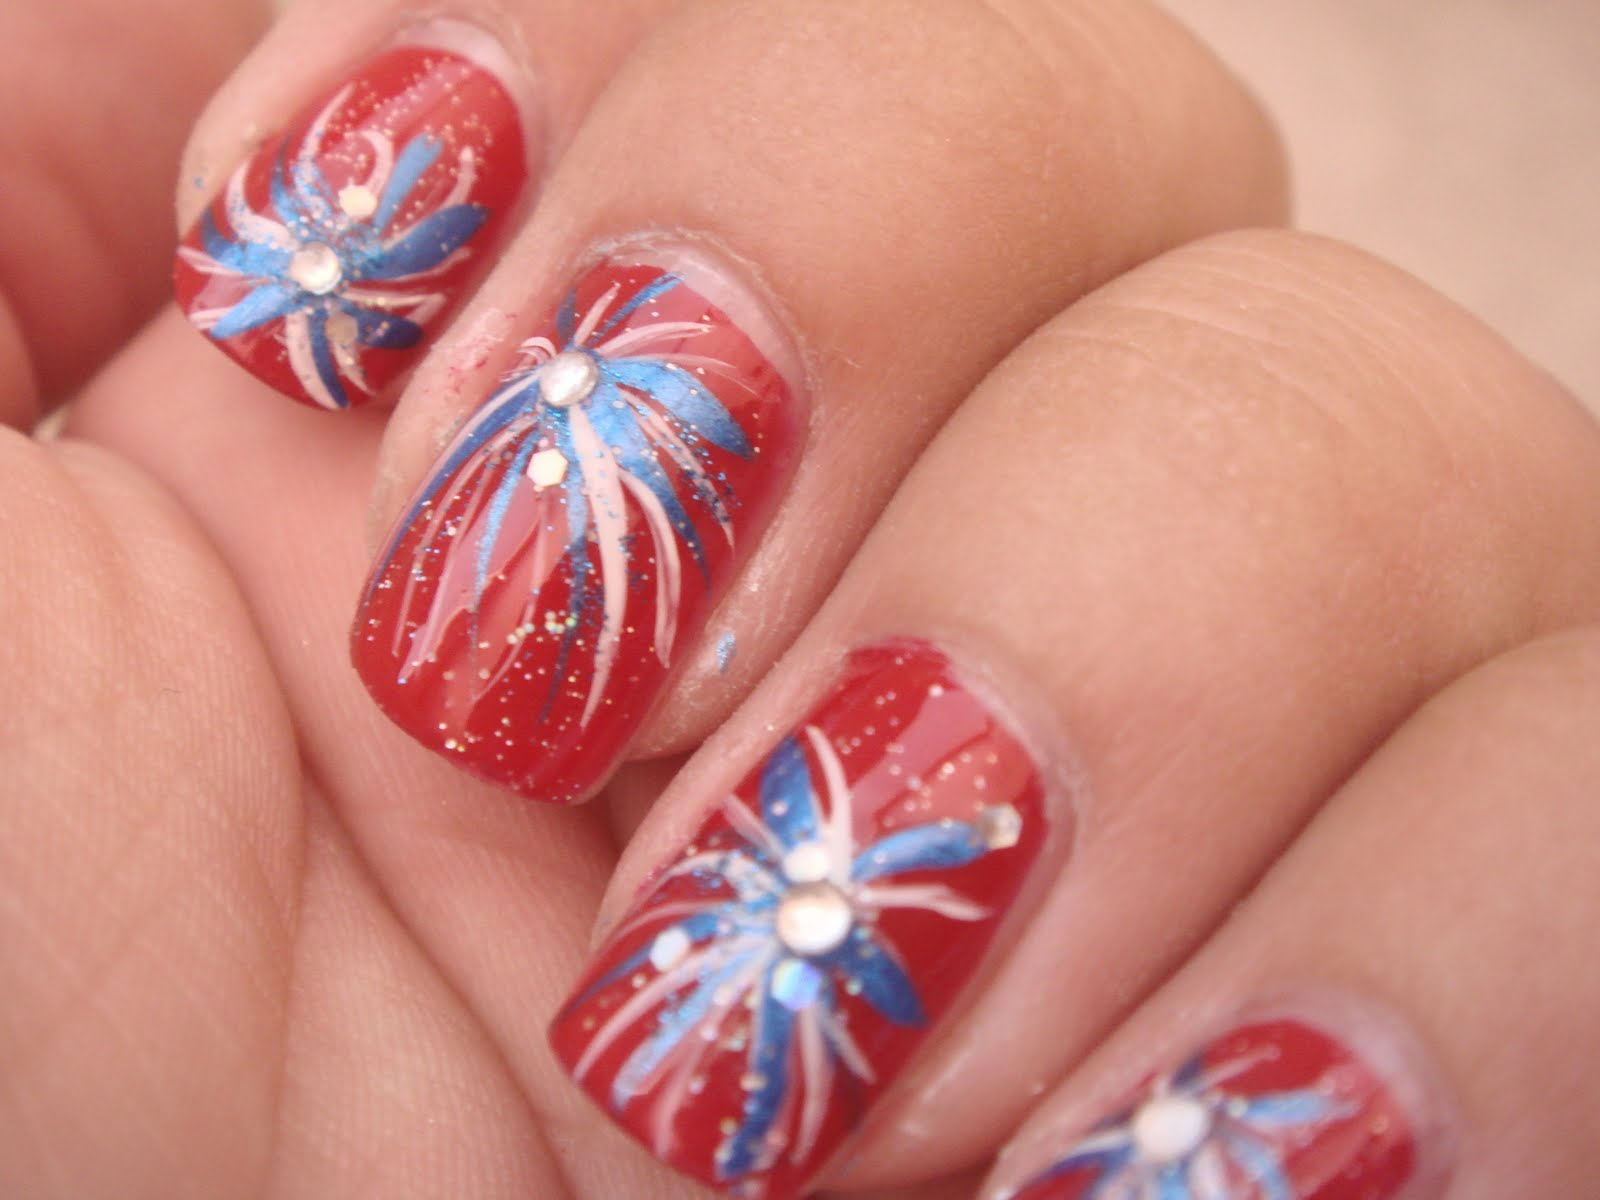 All nail and cosmetics 4th of july nails 4th of july nails prinsesfo Image collections